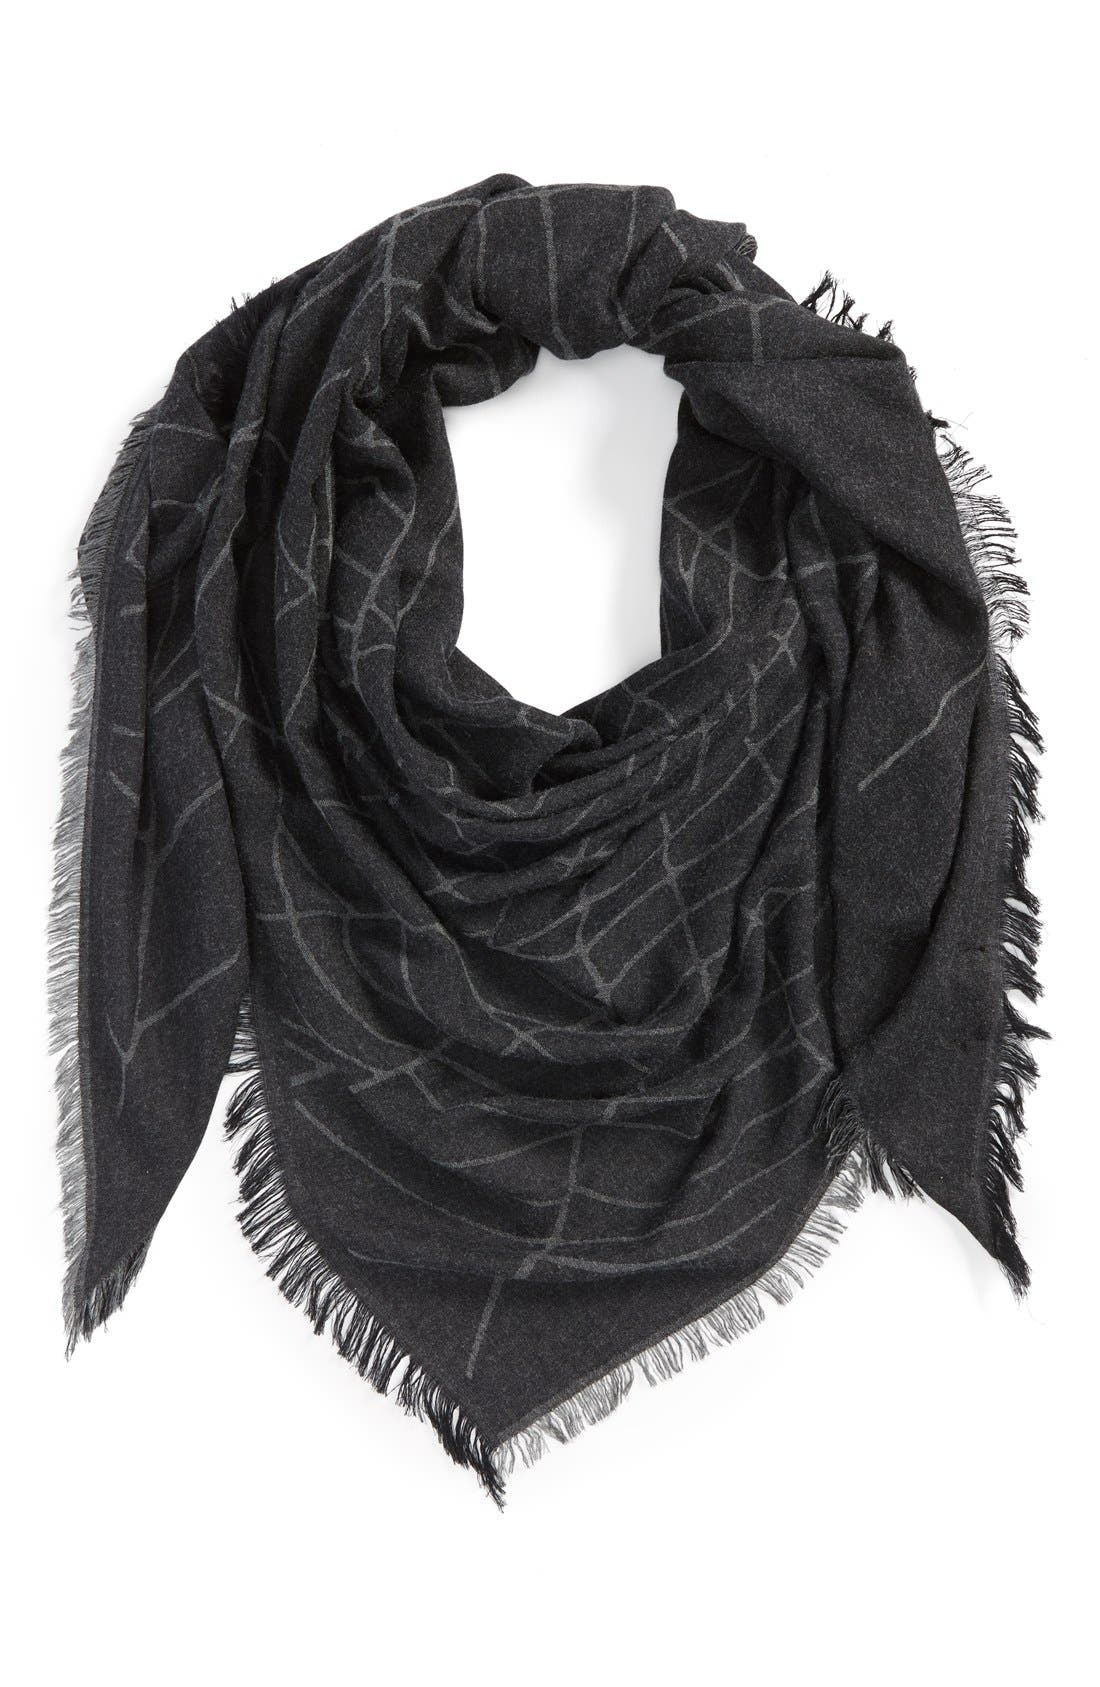 Alternate Image 1 Selected - The Kooples Spider Web Print Triangle Scarf